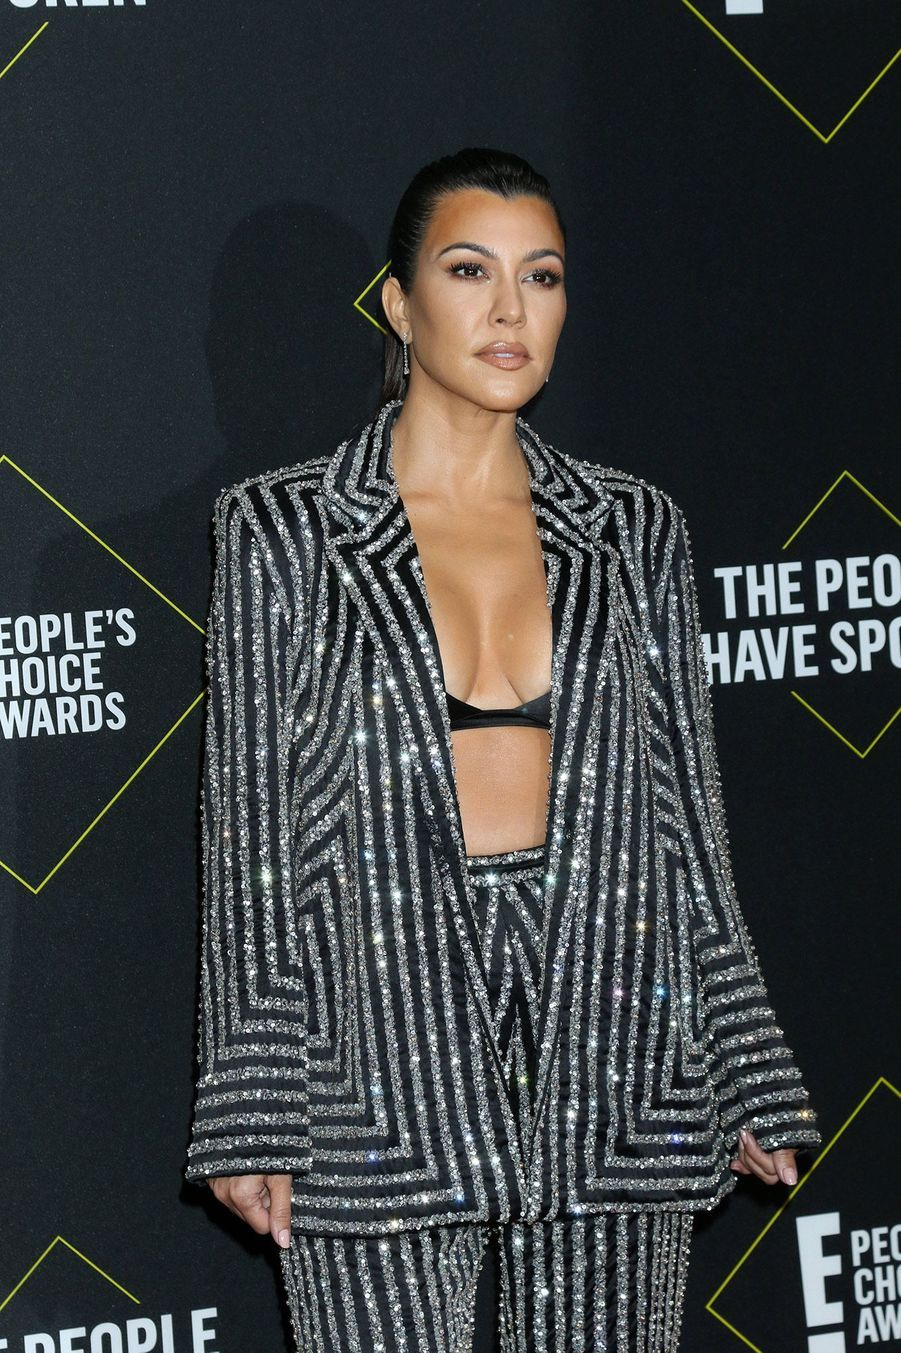 Kourtney Kardashian à la 45ème cérémonie des People's Choice Awards, à Santa Monica (Californie), le 10 novembre 2019.